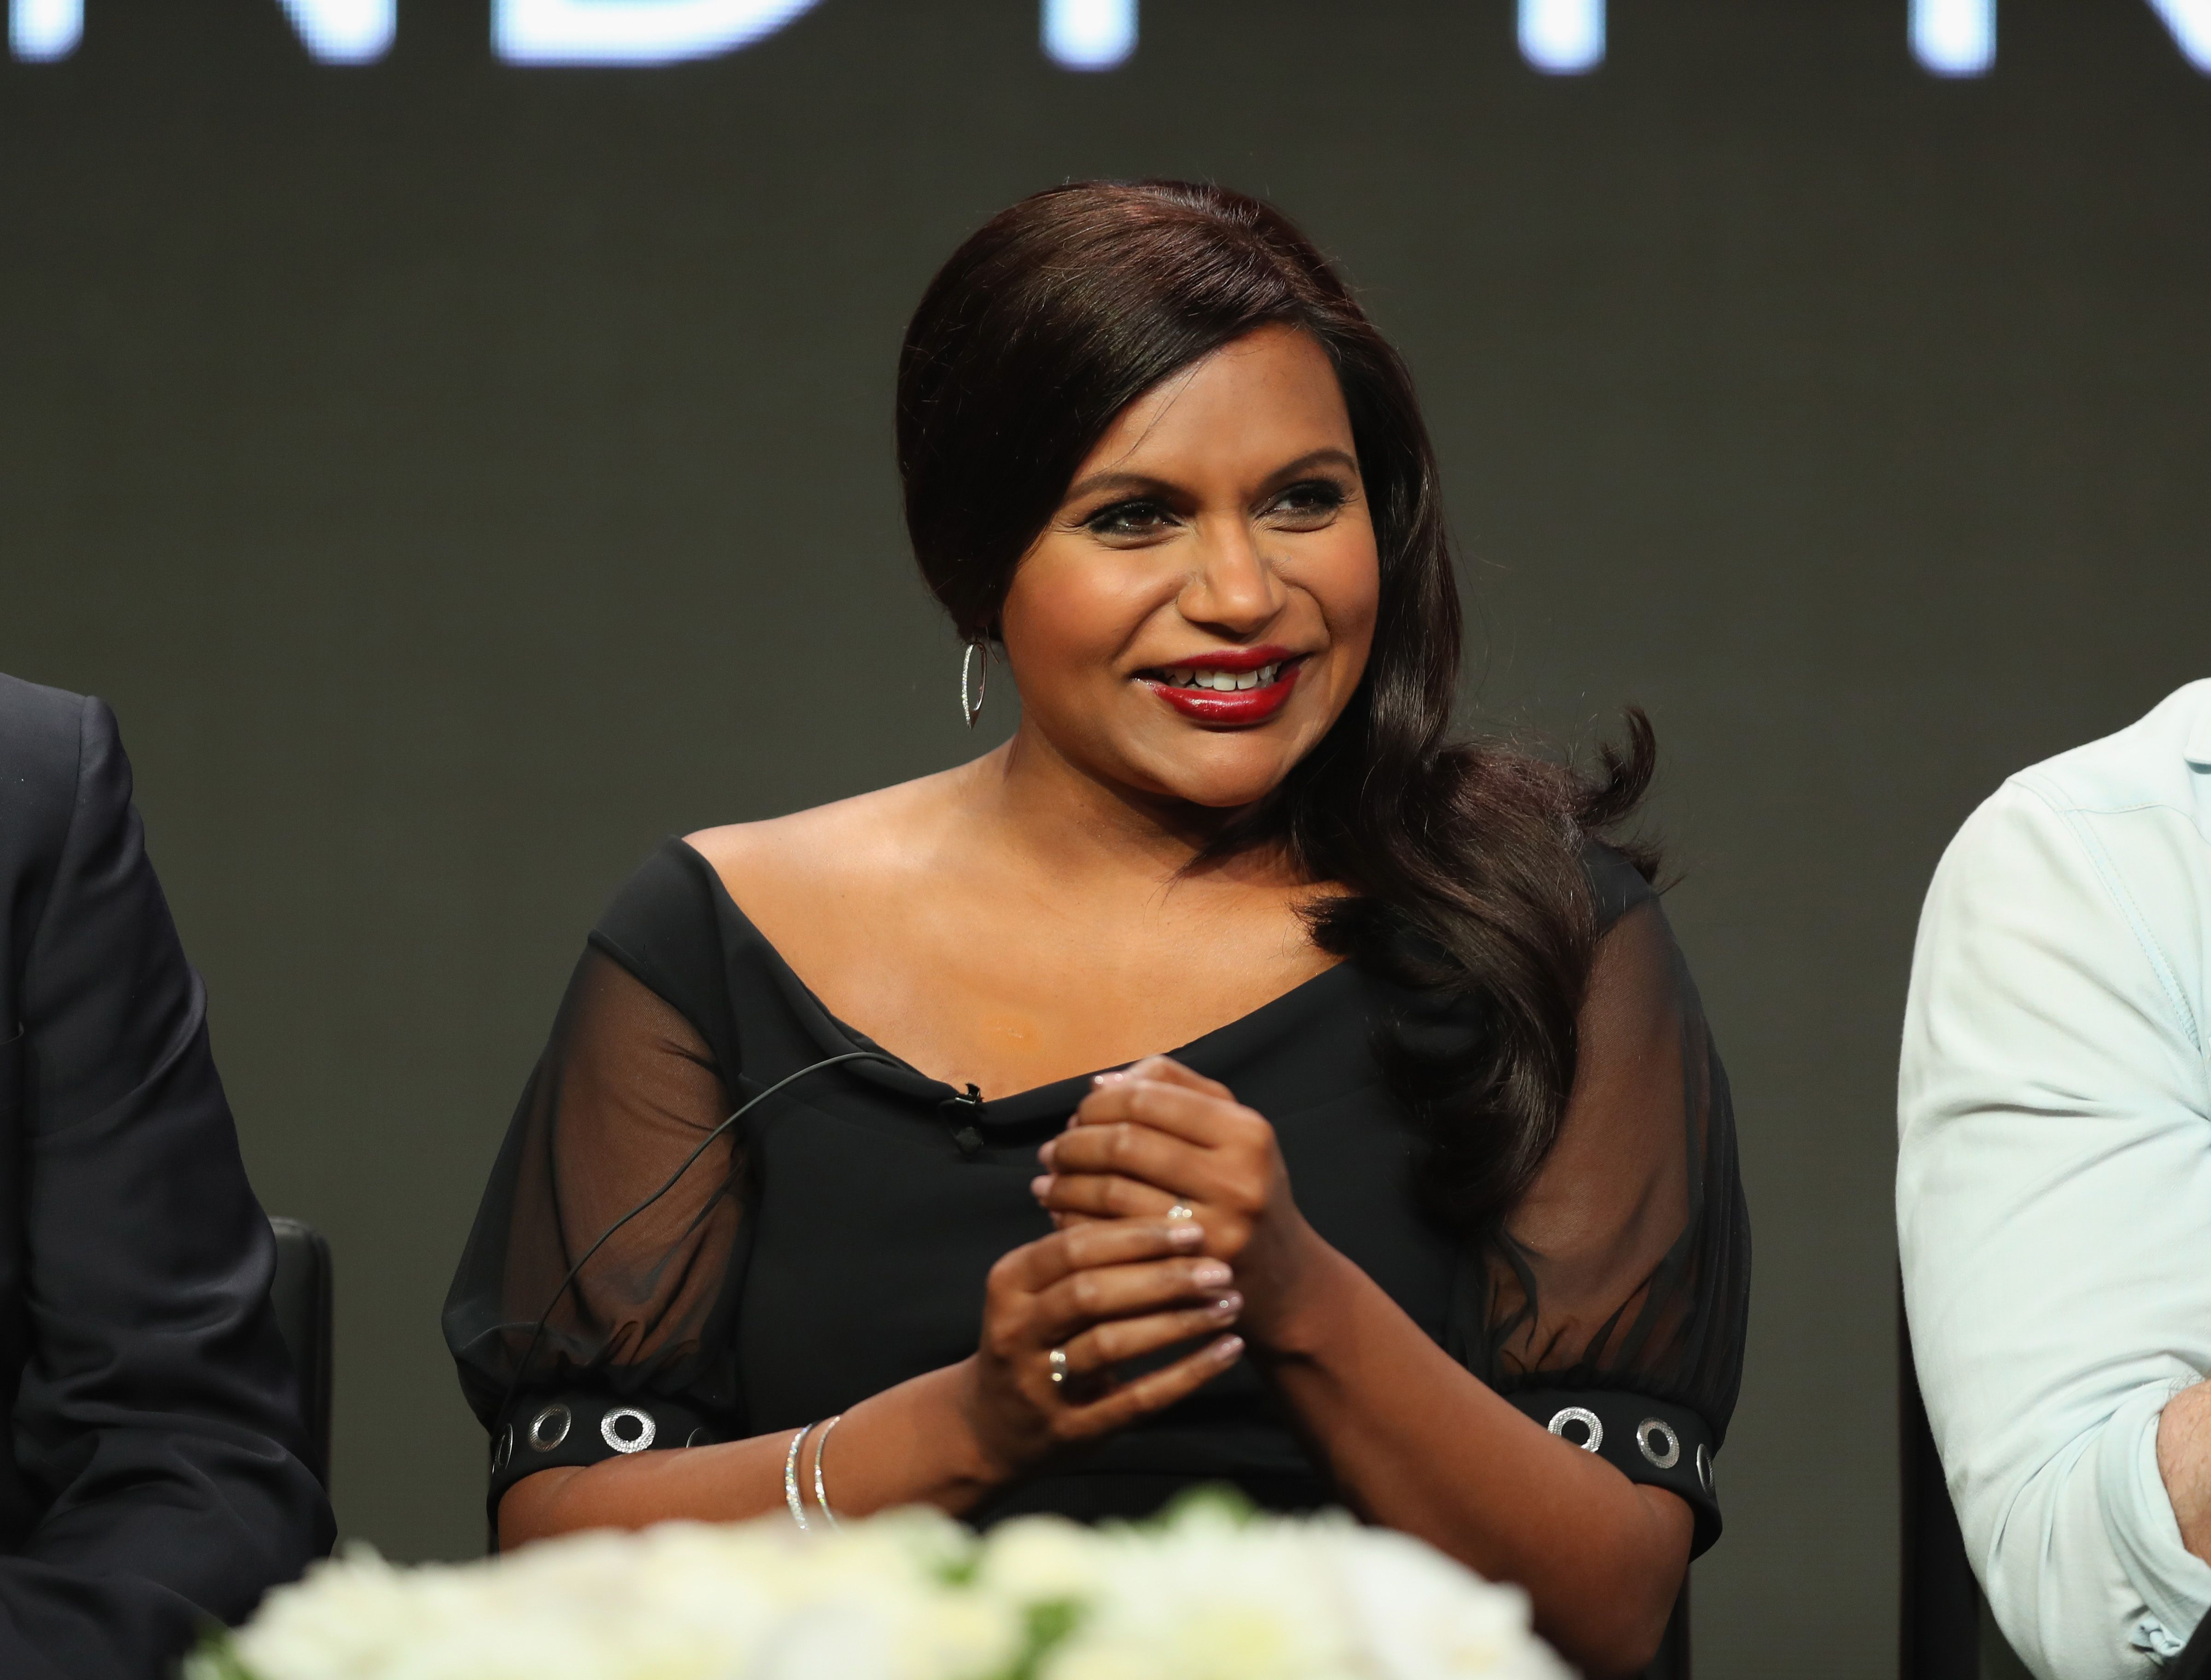 Mindy Kaling Talks About Her Pregnancy For The First Time